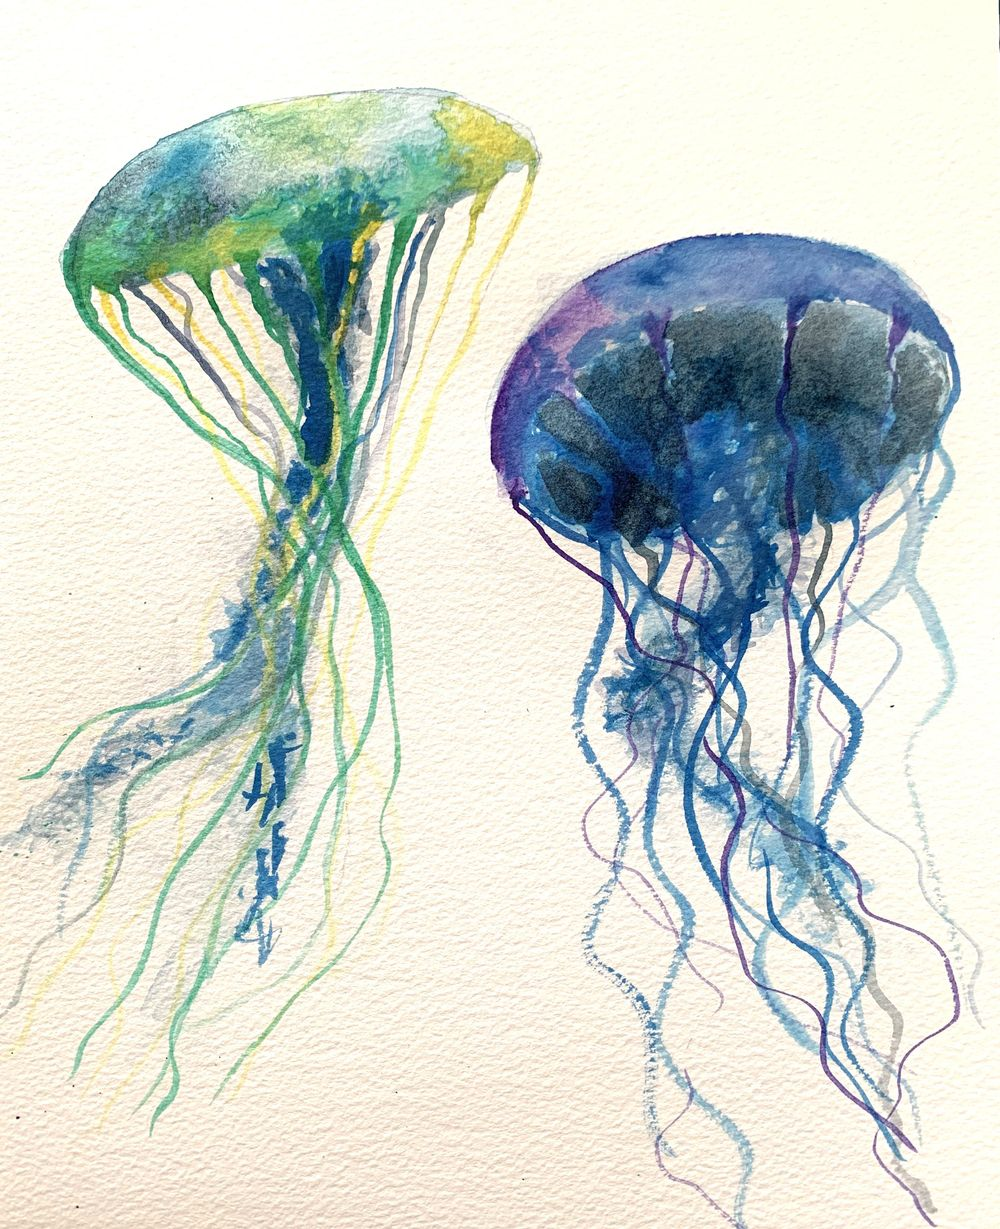 Jellyfish and galaxy - image 2 - student project